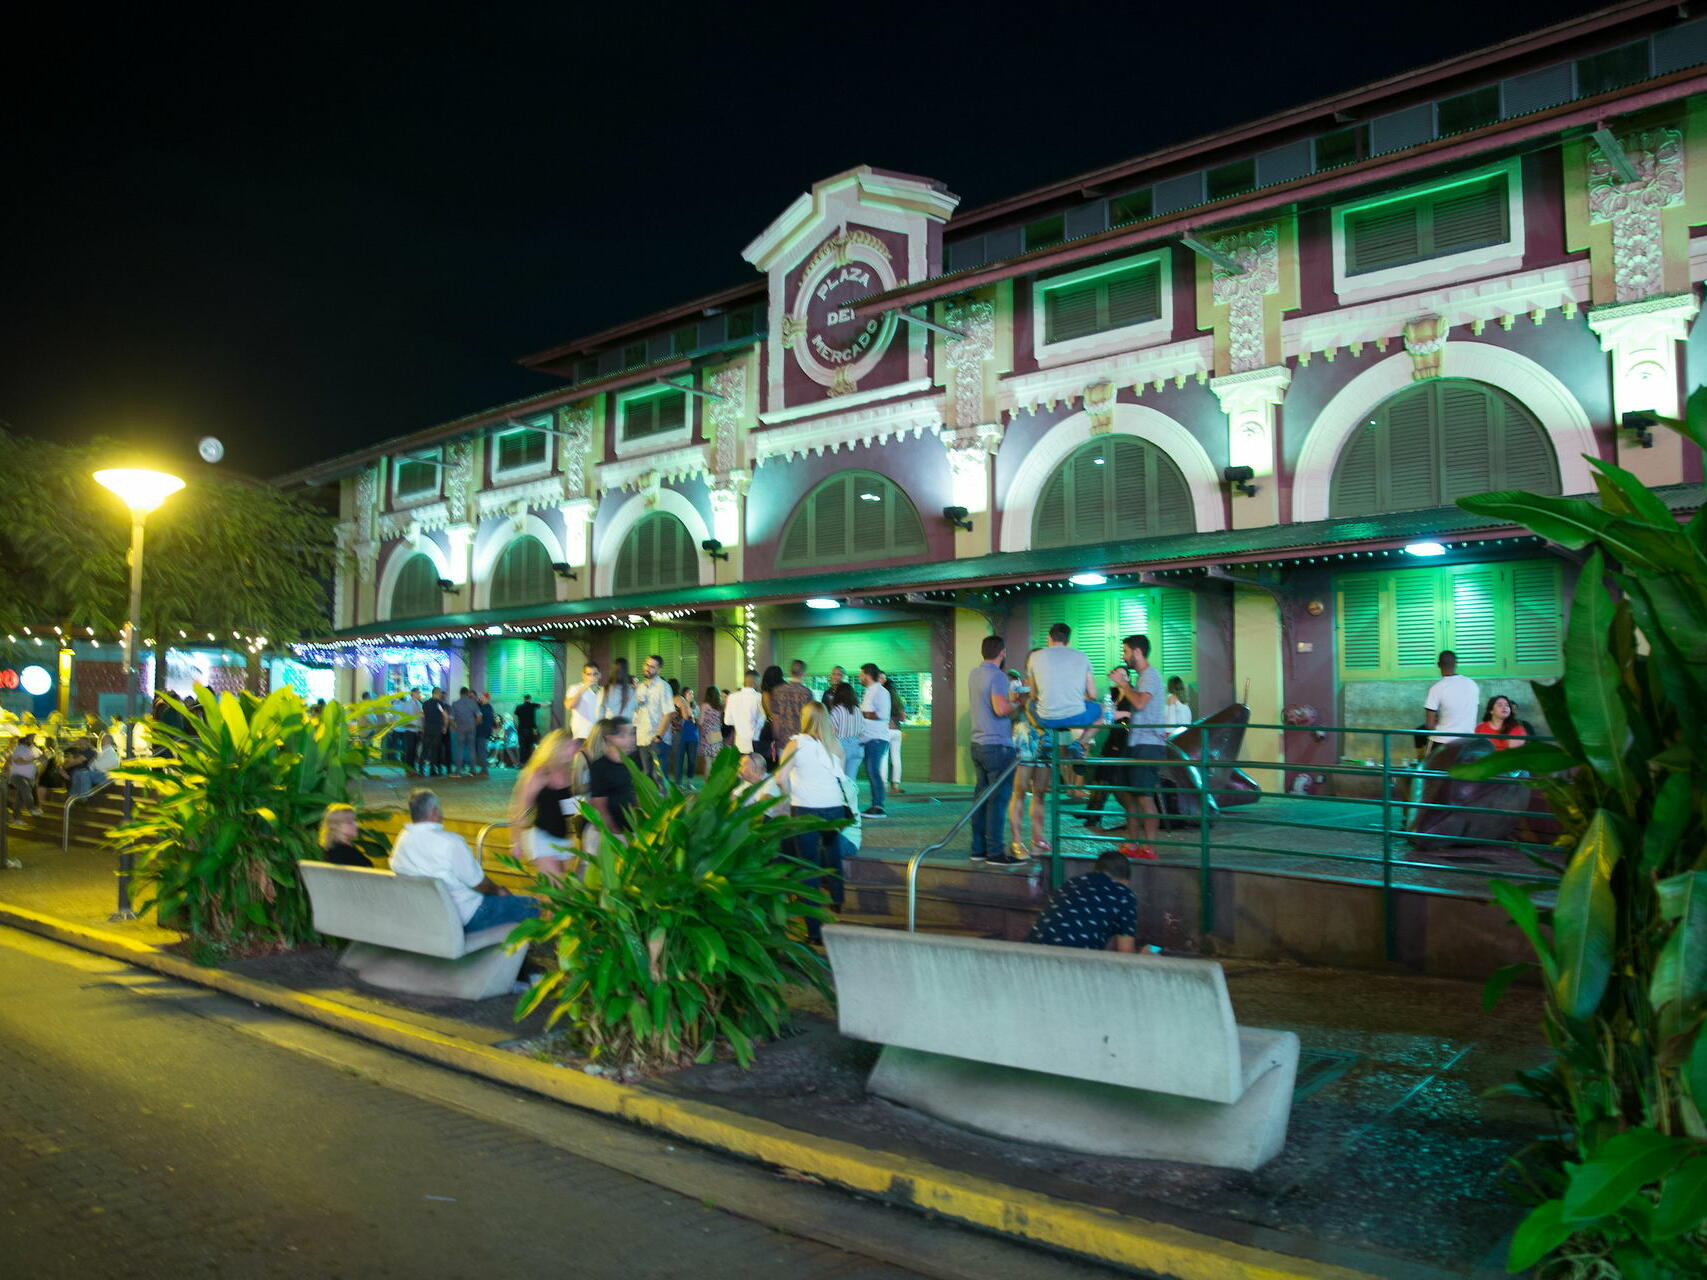 plaza with people hanging out at night